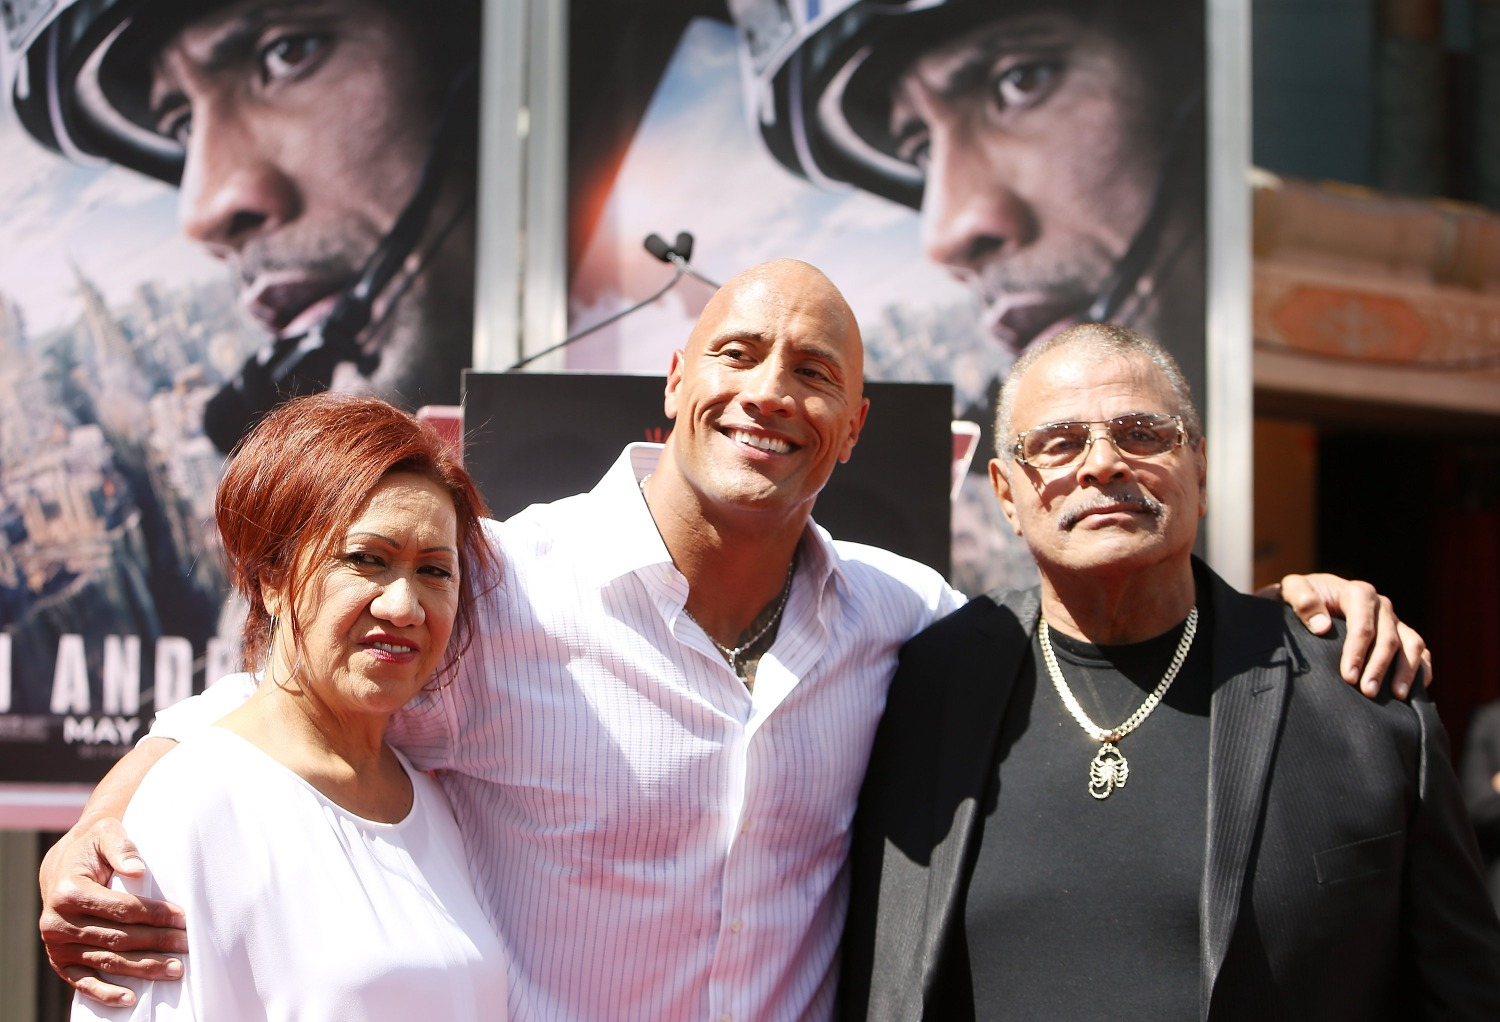 WWE superstar The Rock suffered a devastating loss with the tragic death of his father, Rocky Johnson.